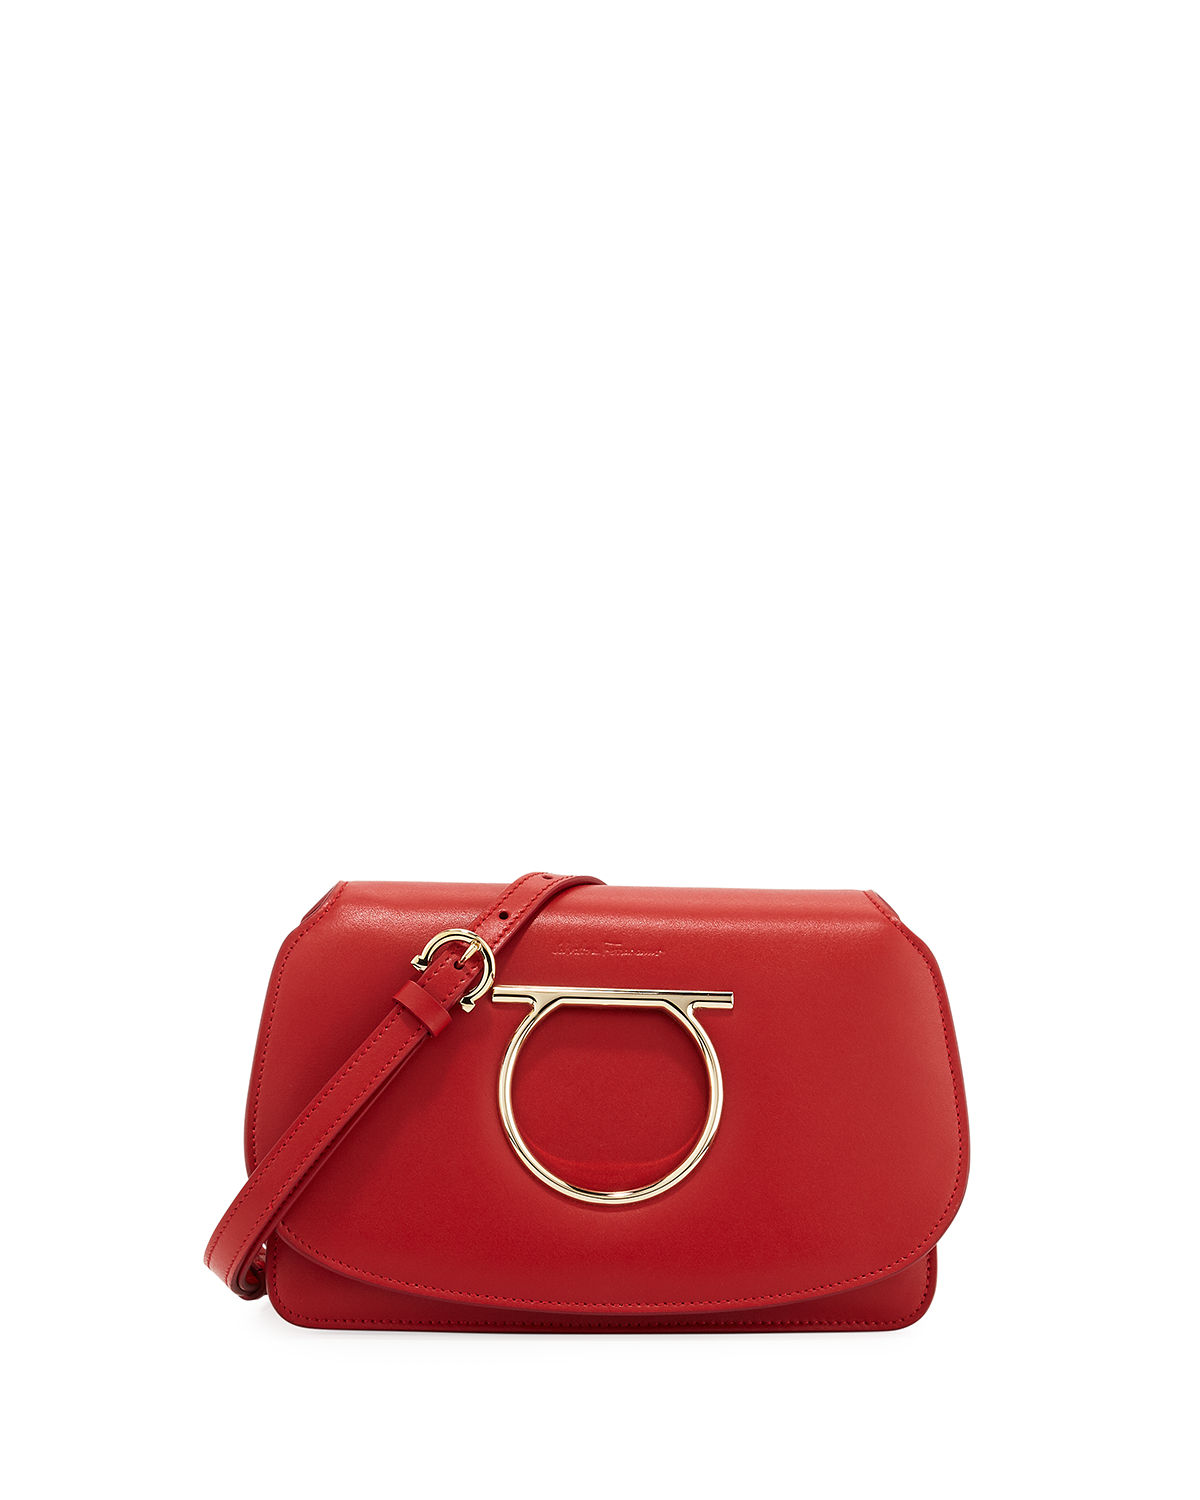 Gancio Vela Smooth Leather Crossbody Bag